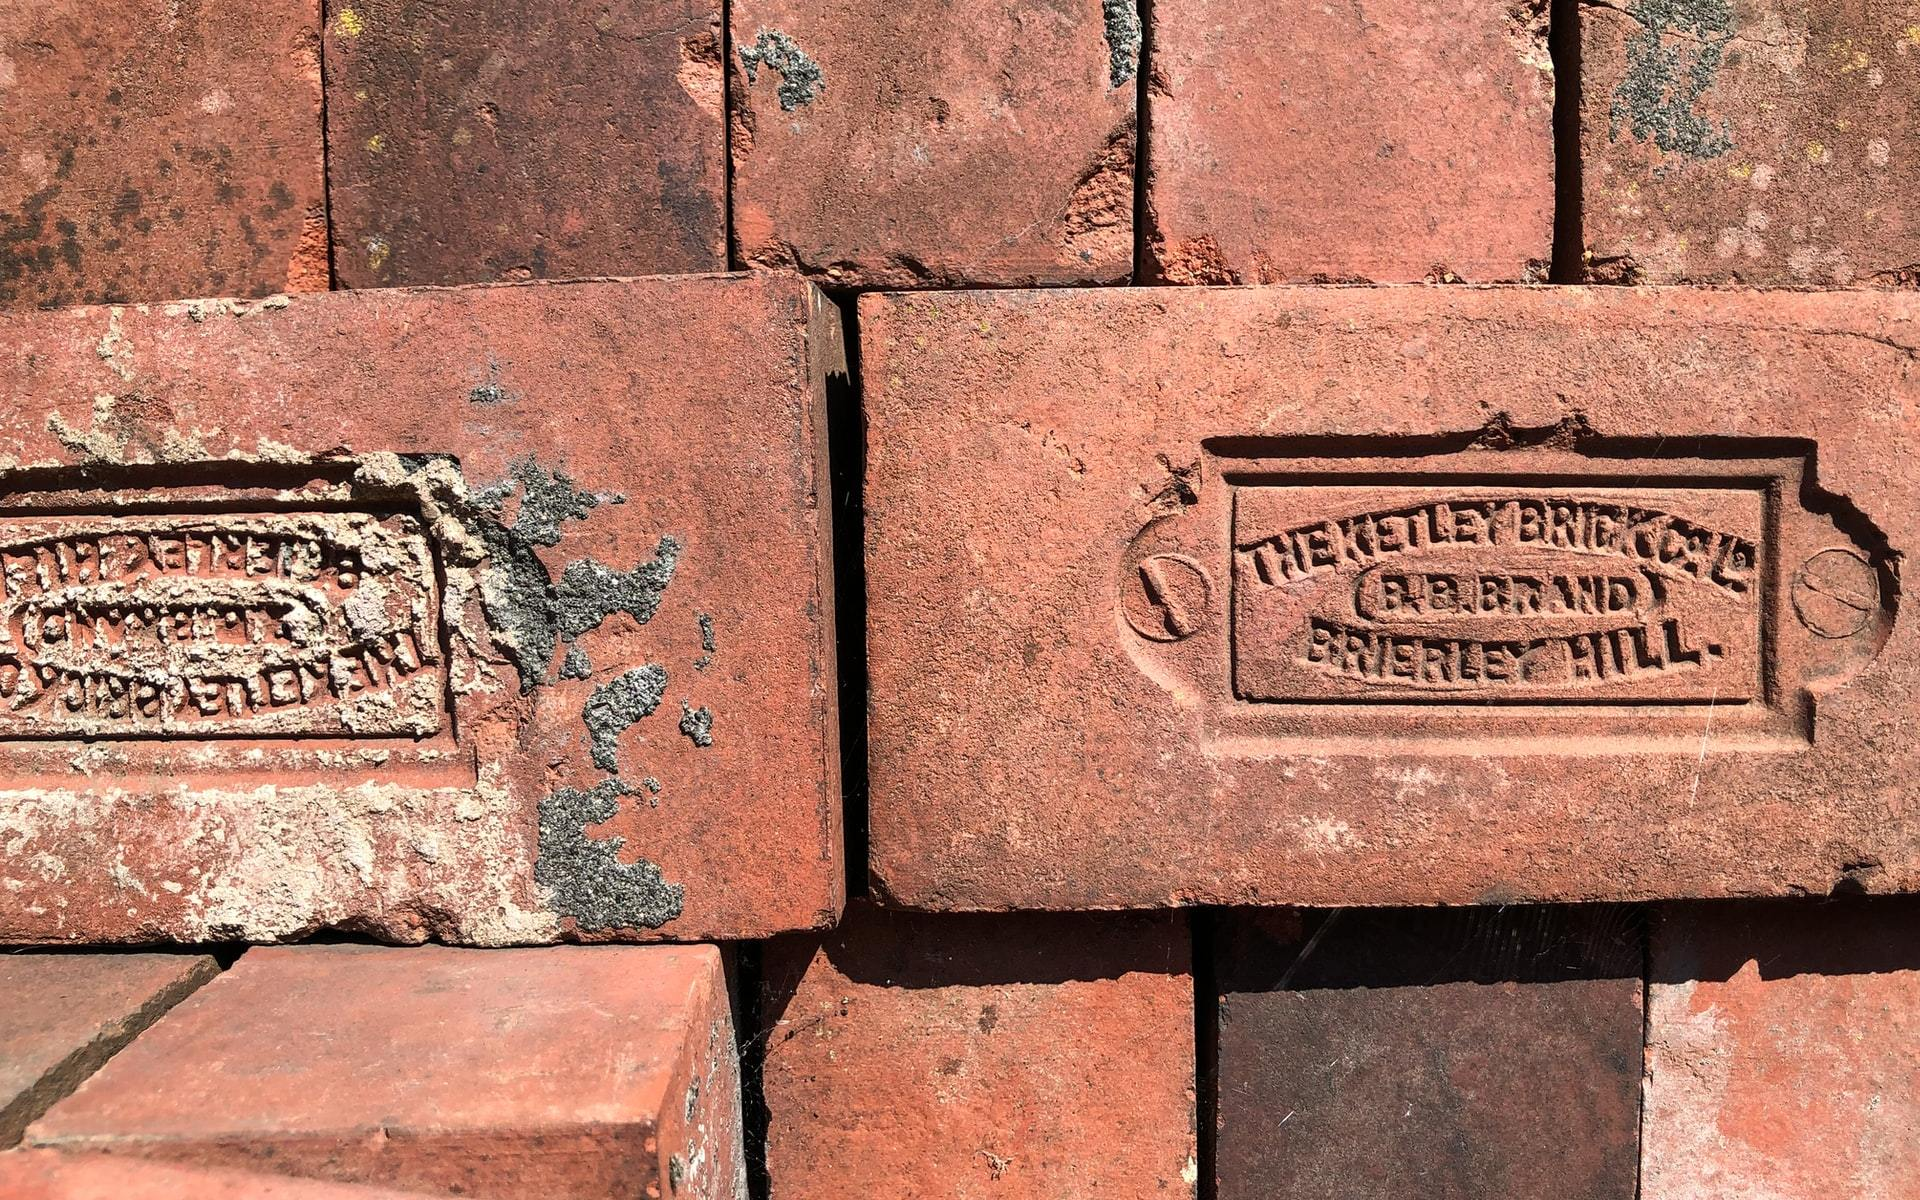 Bricks to represent the building of ideas